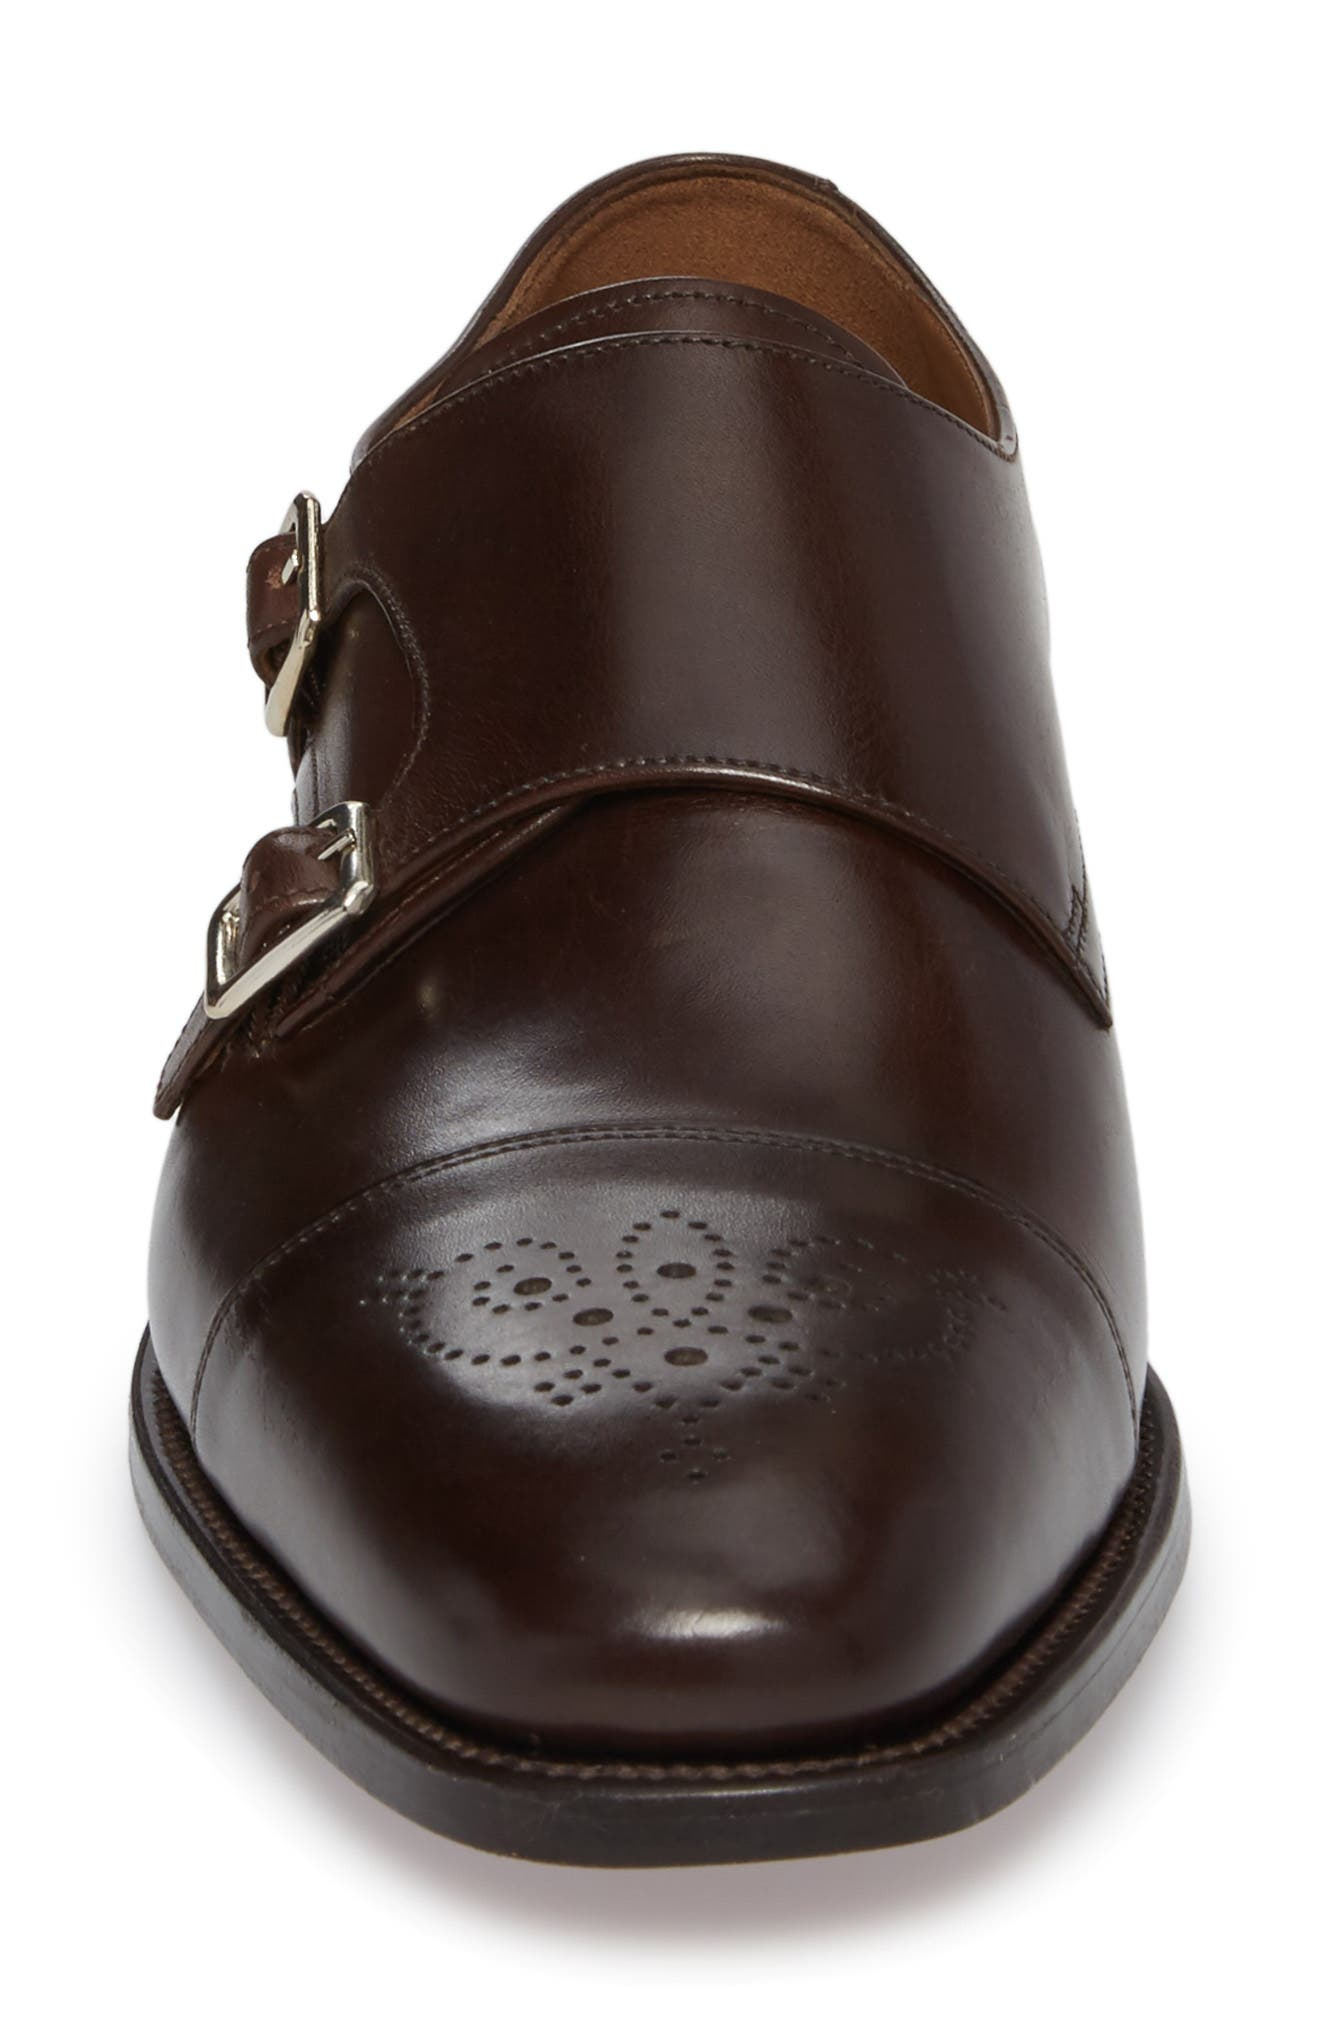 Sausalito Double Monk Strap Shoe,                             Alternate thumbnail 4, color,                             Coffee